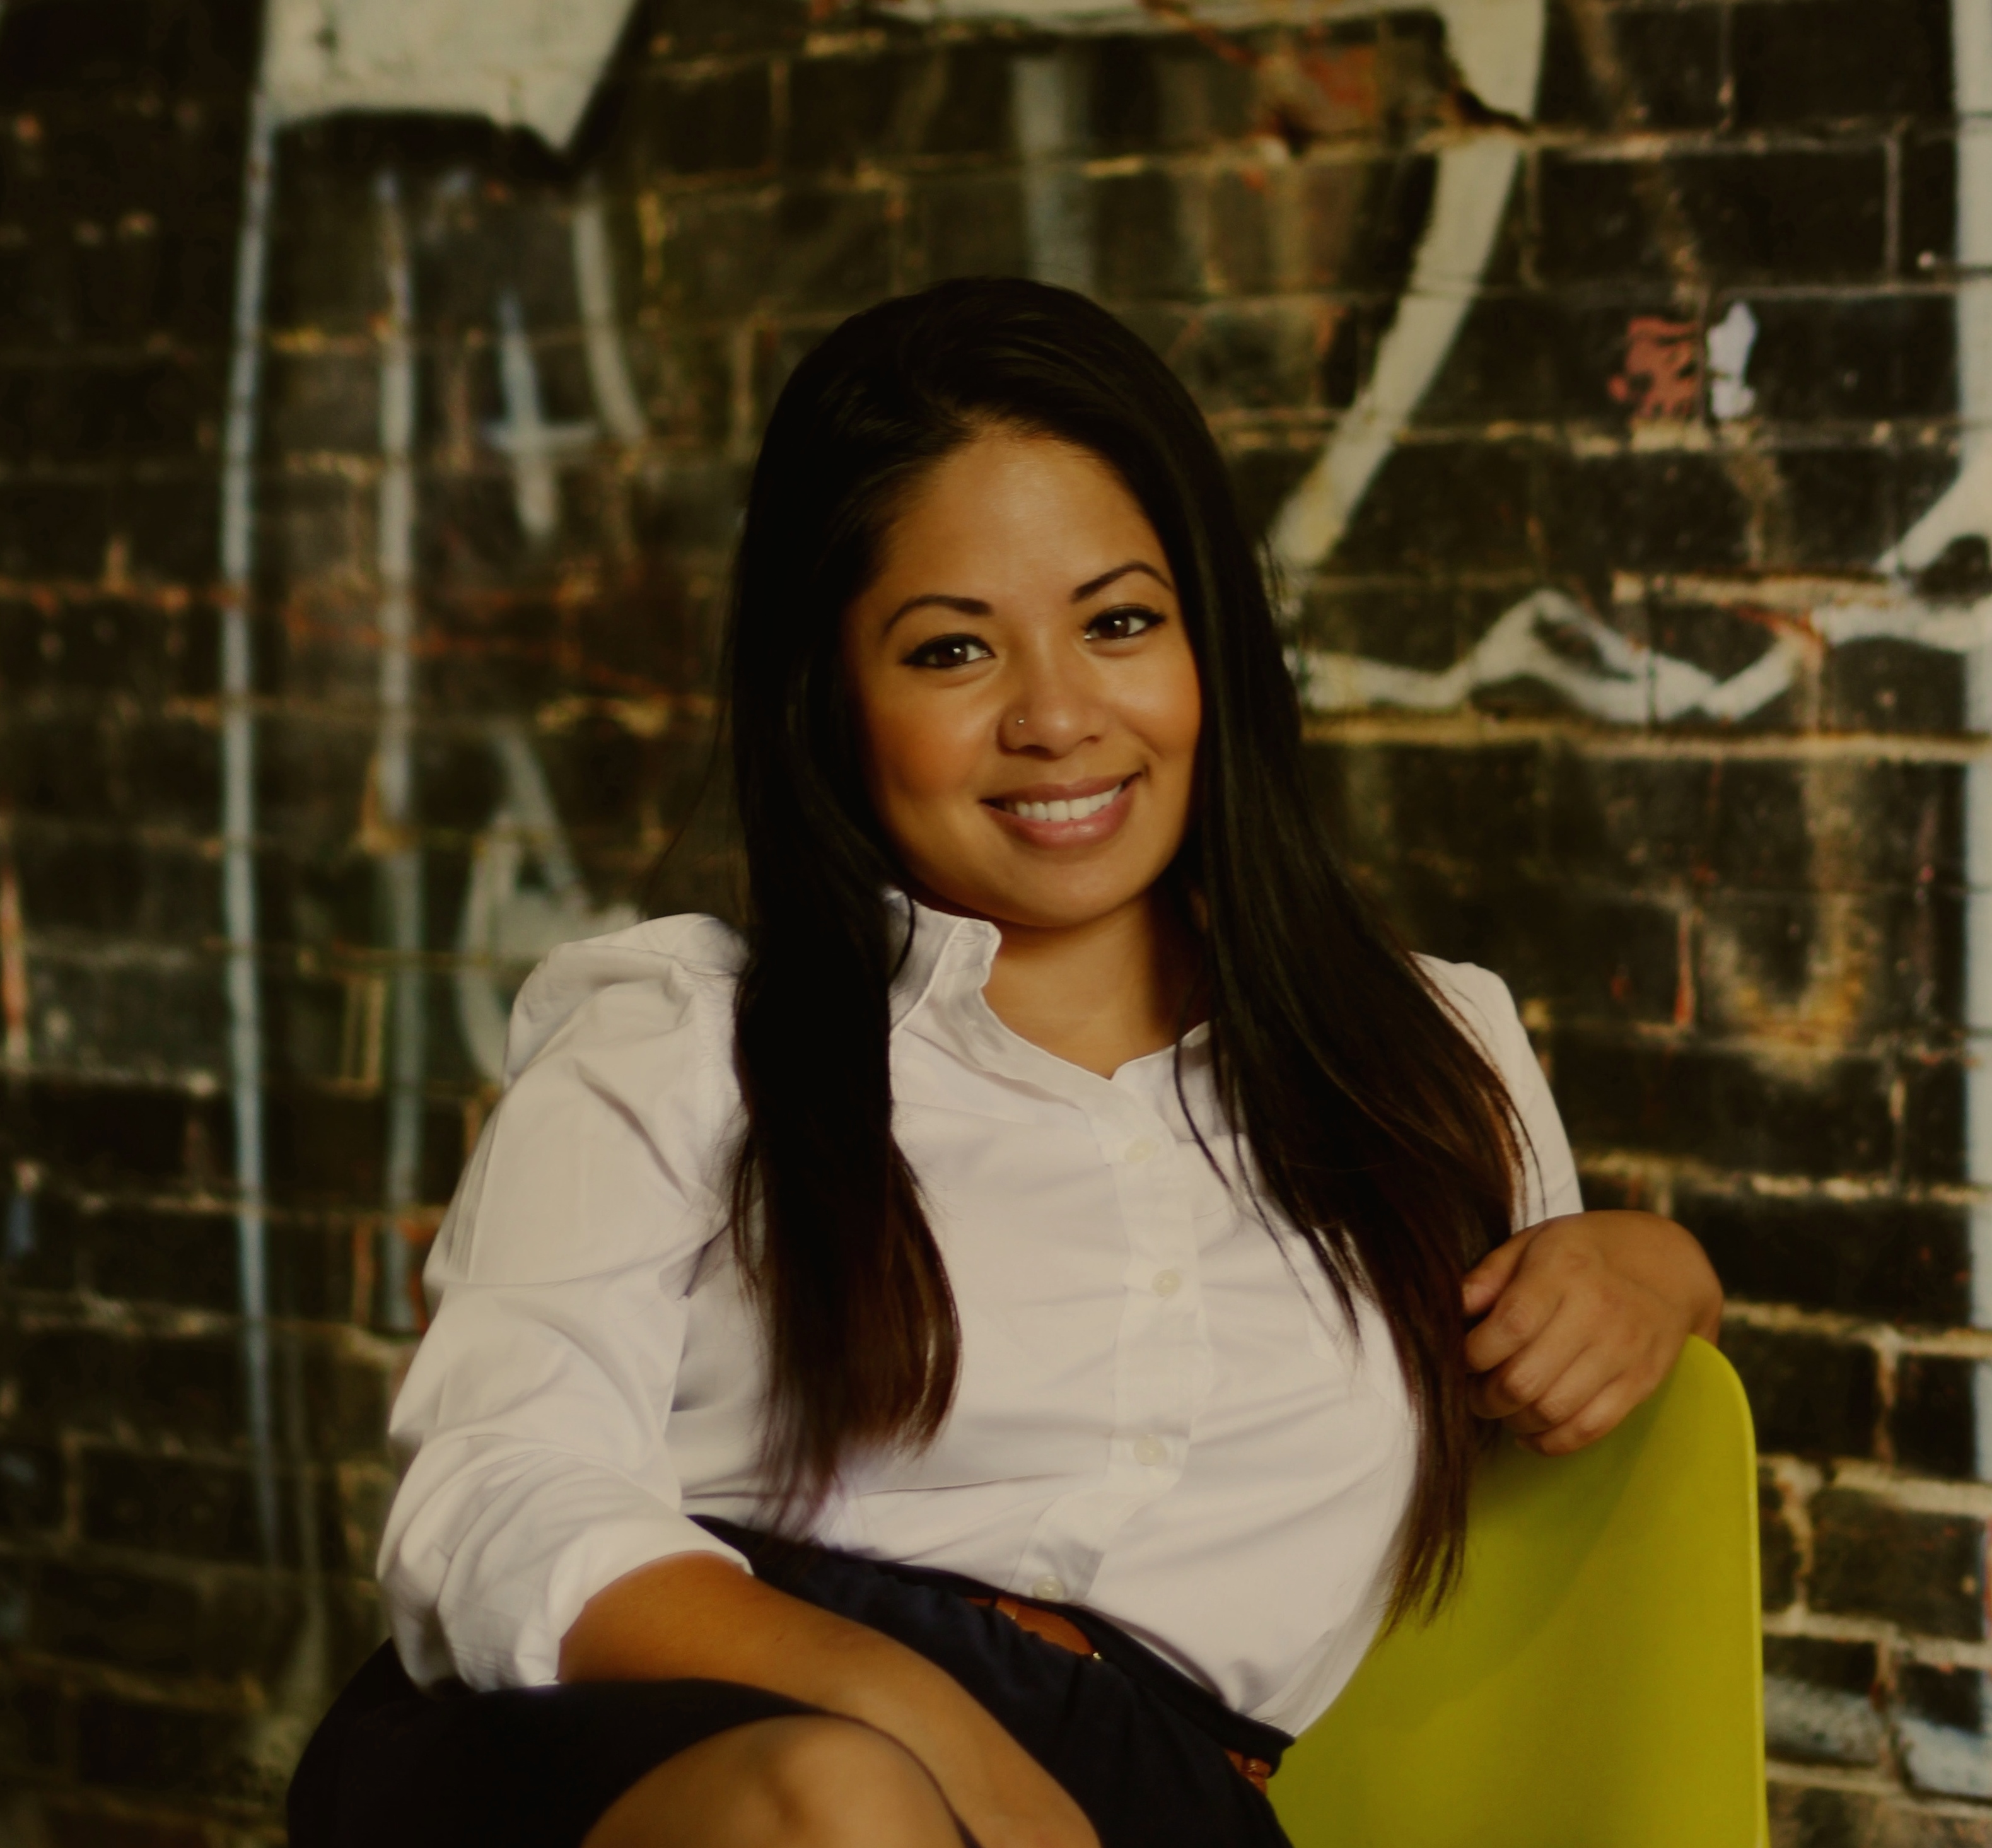 Linh Nguyen is the founder of the Bodhi Collective, a creative firm that designs environments to change behaviour for social good.